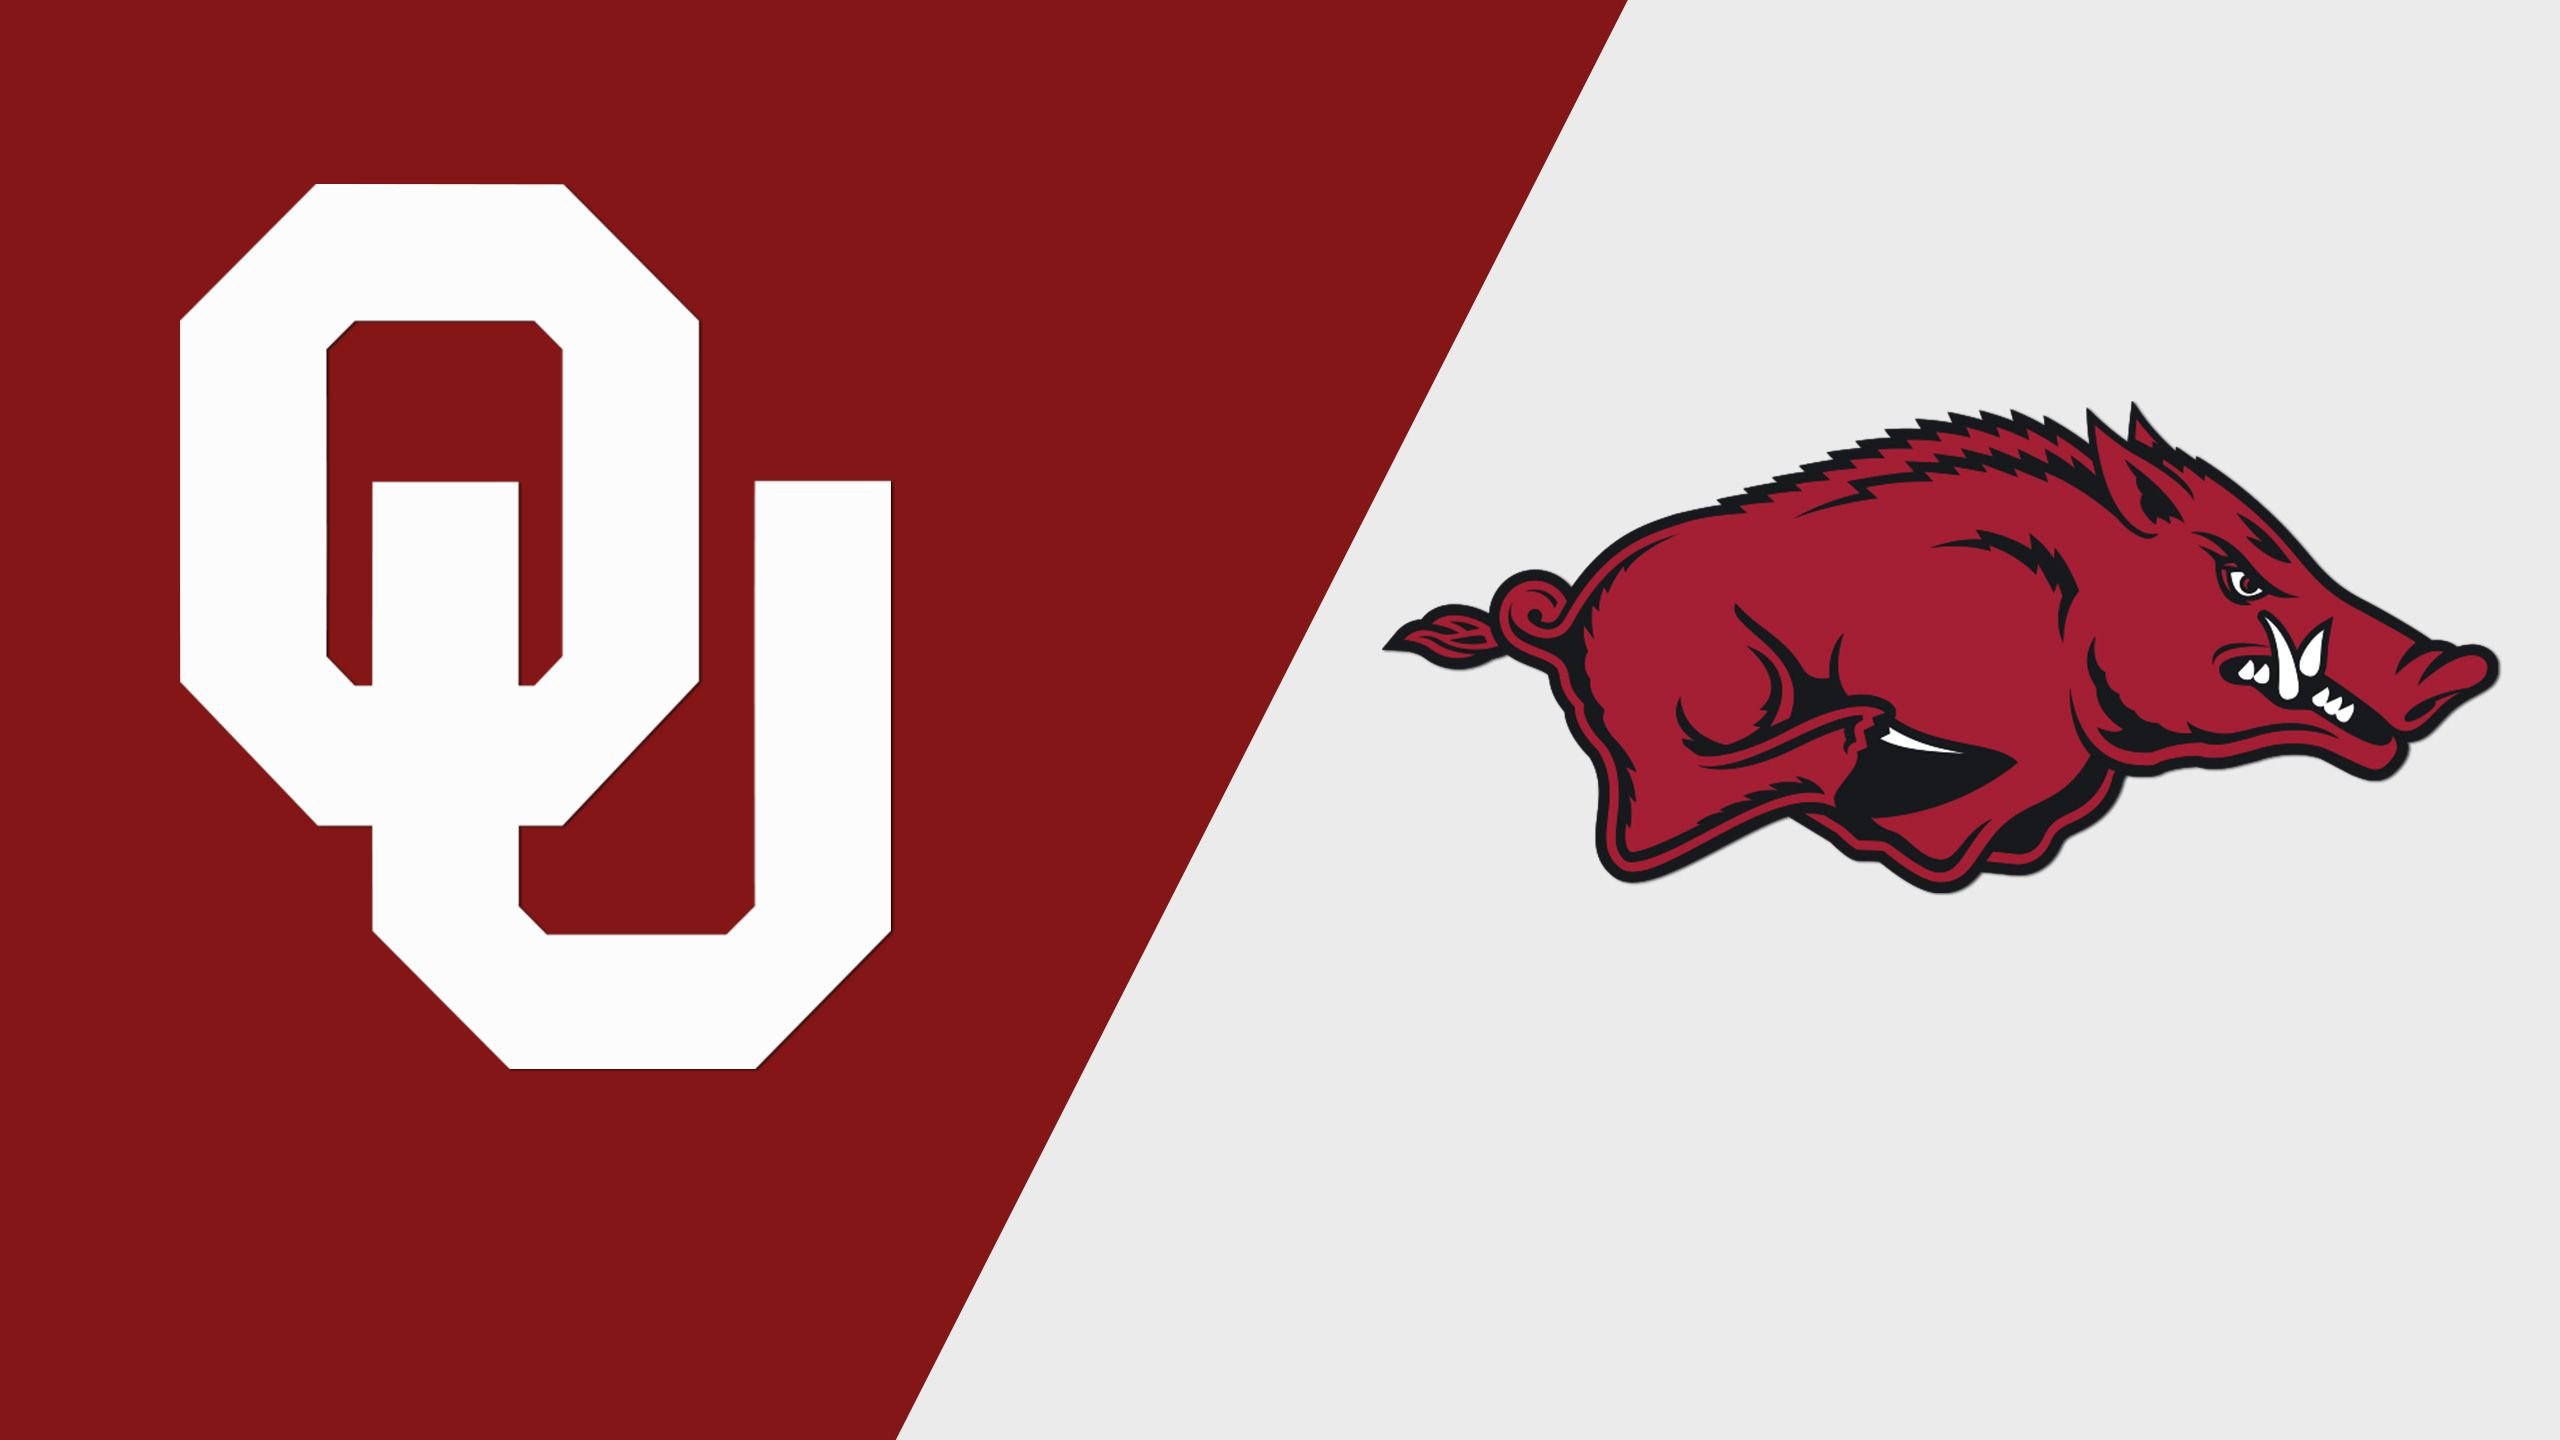 #4 Oklahoma vs. #13 Arkansas (Site 4 / Game 2) (NCAA Softball Championship)